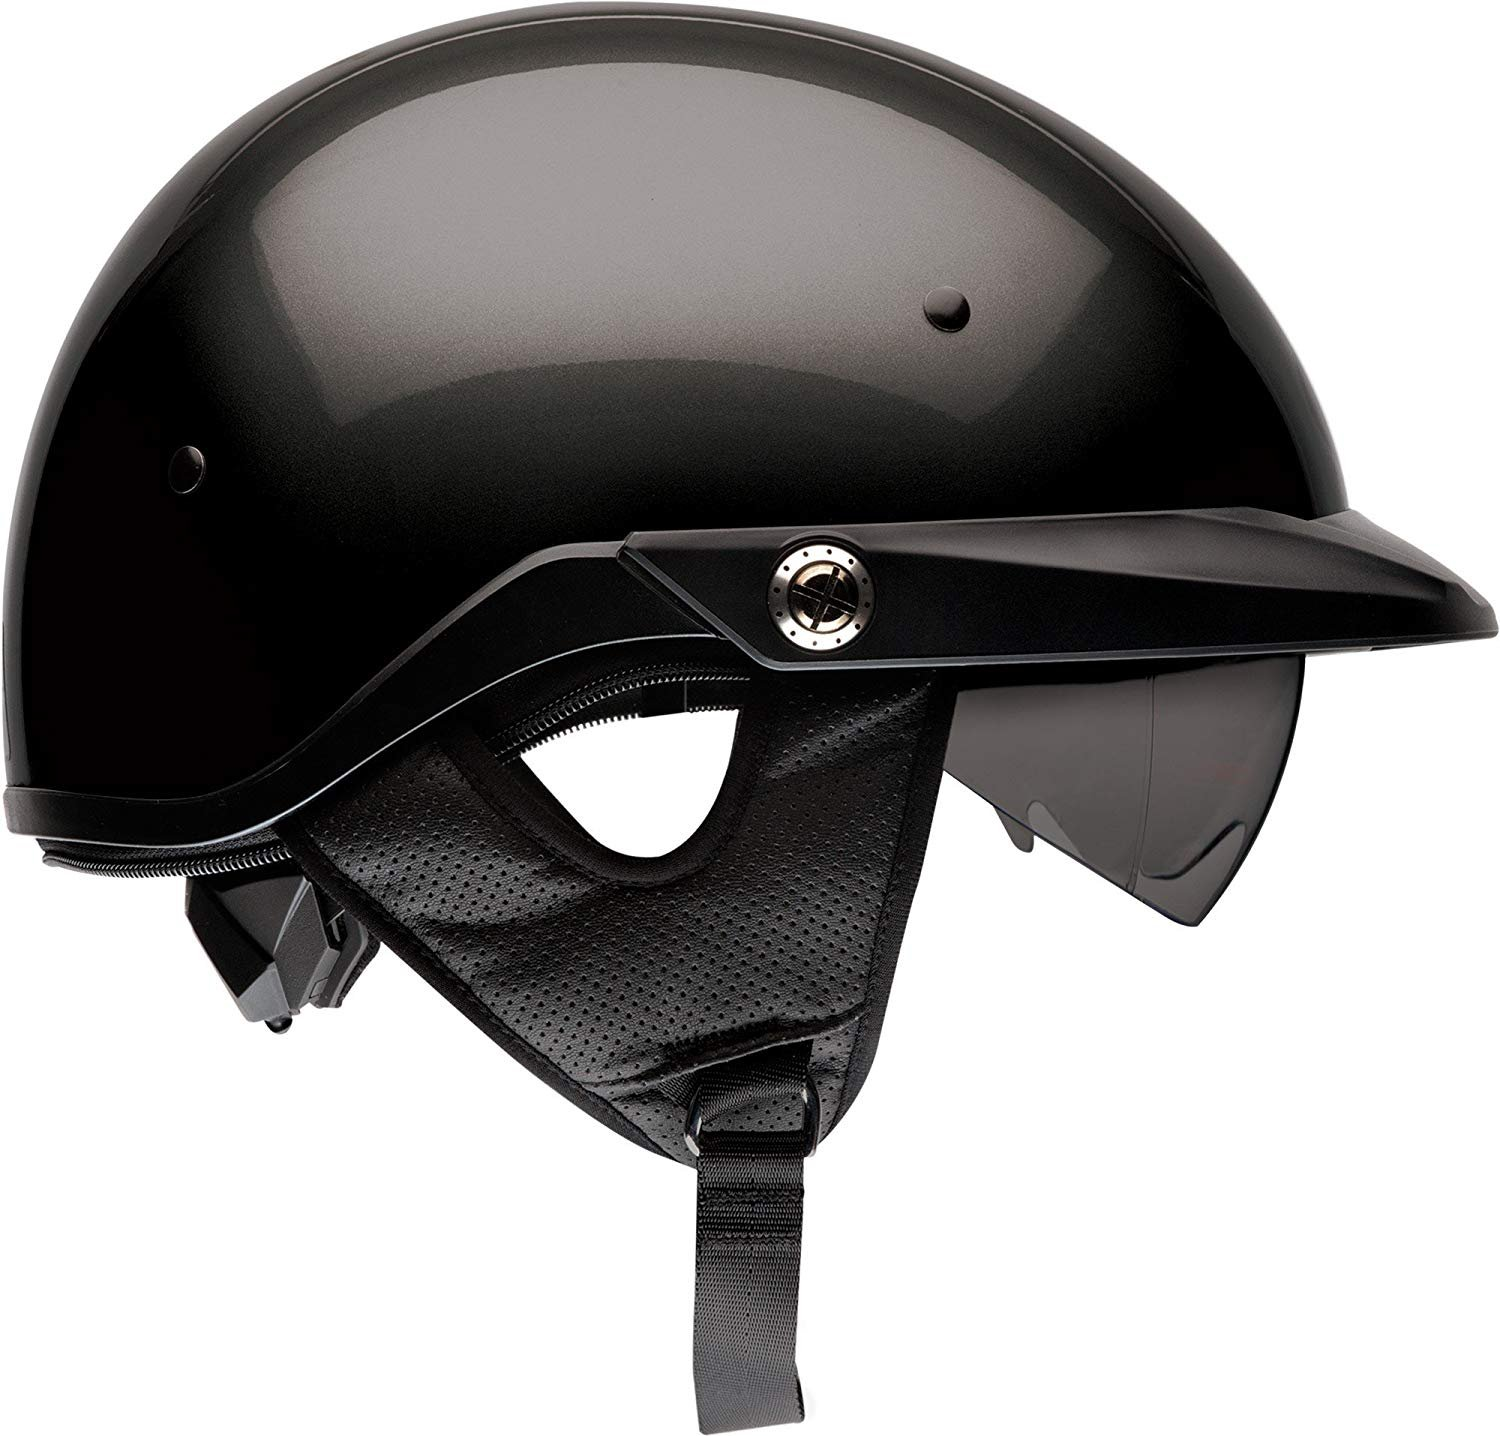 Amazon.com: Bell Pit Boss Open-Face Motorcycle Helmet (Solid Black, Medium): BELL: Automotive